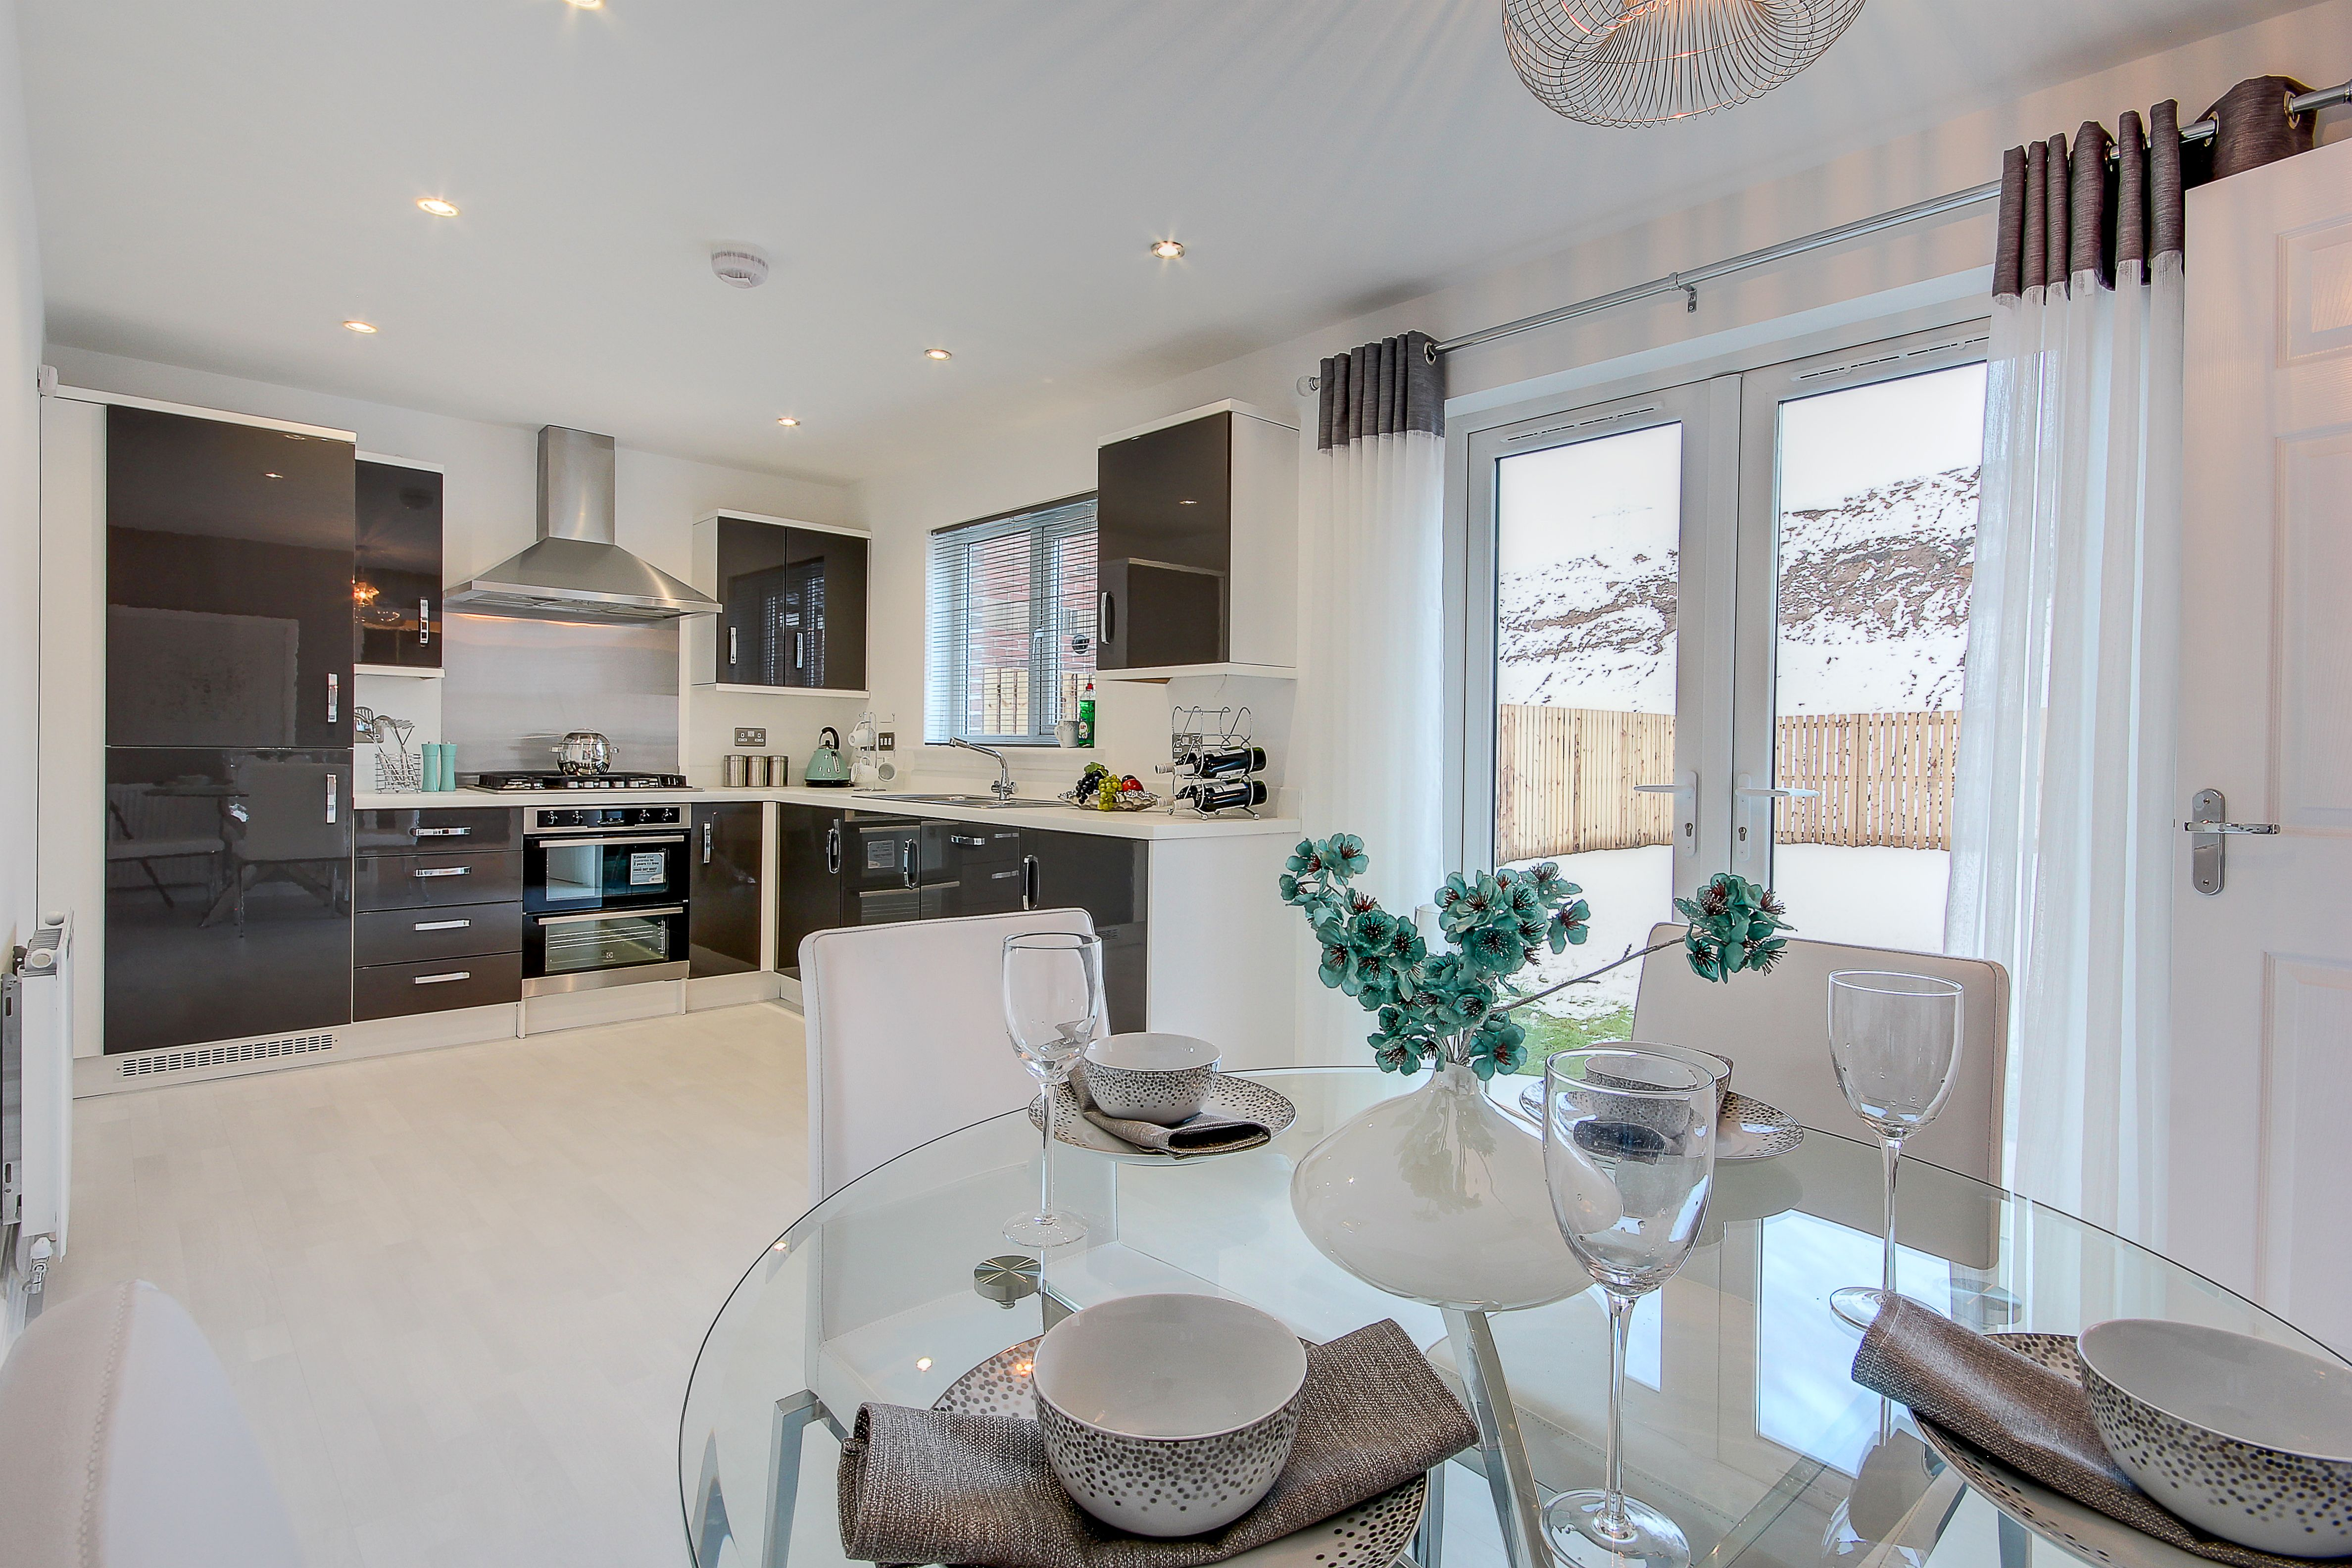 New homes for sale in irvine also our spacious kitchens are perfect growing families http bit rh pinterest